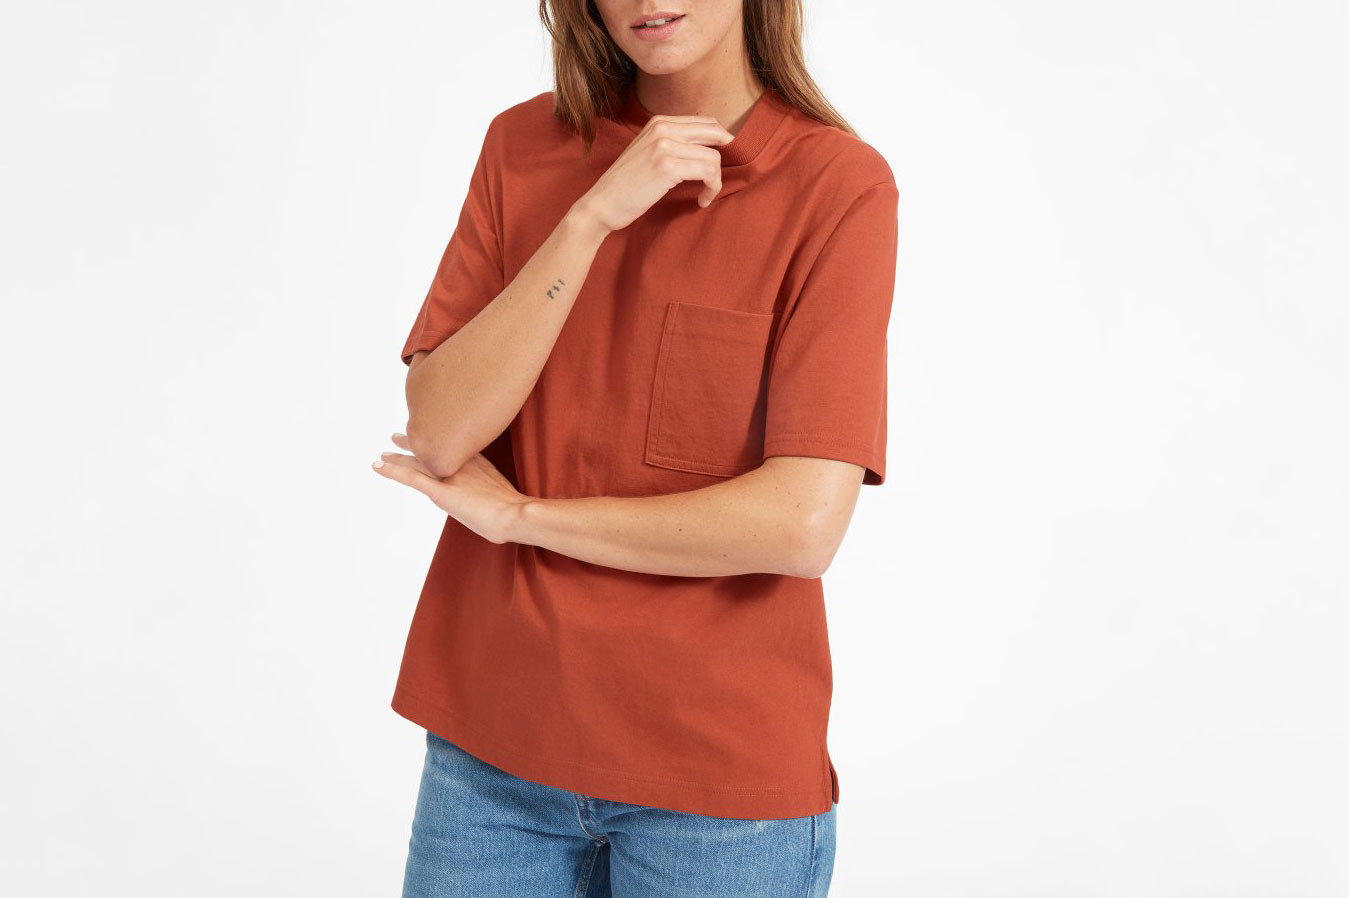 Everlane Oversize Pocket Tee